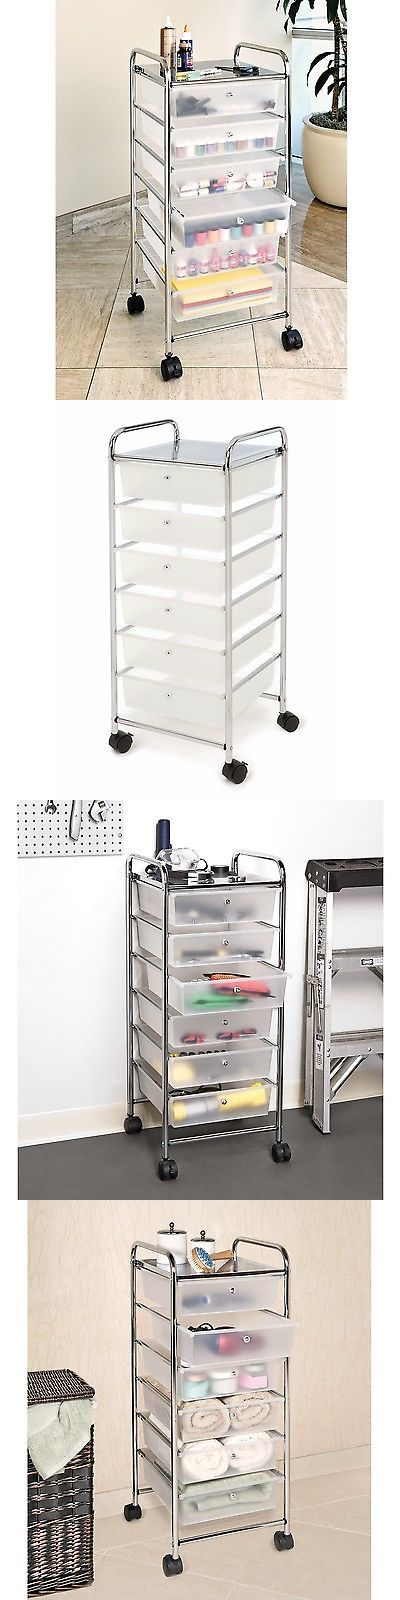 Salon and Spa Supplies: Barber Shop Equipment Supplies Storage Accessories Stuff Cart Trolley Salon Best BUY IT NOW ONLY: $79.75